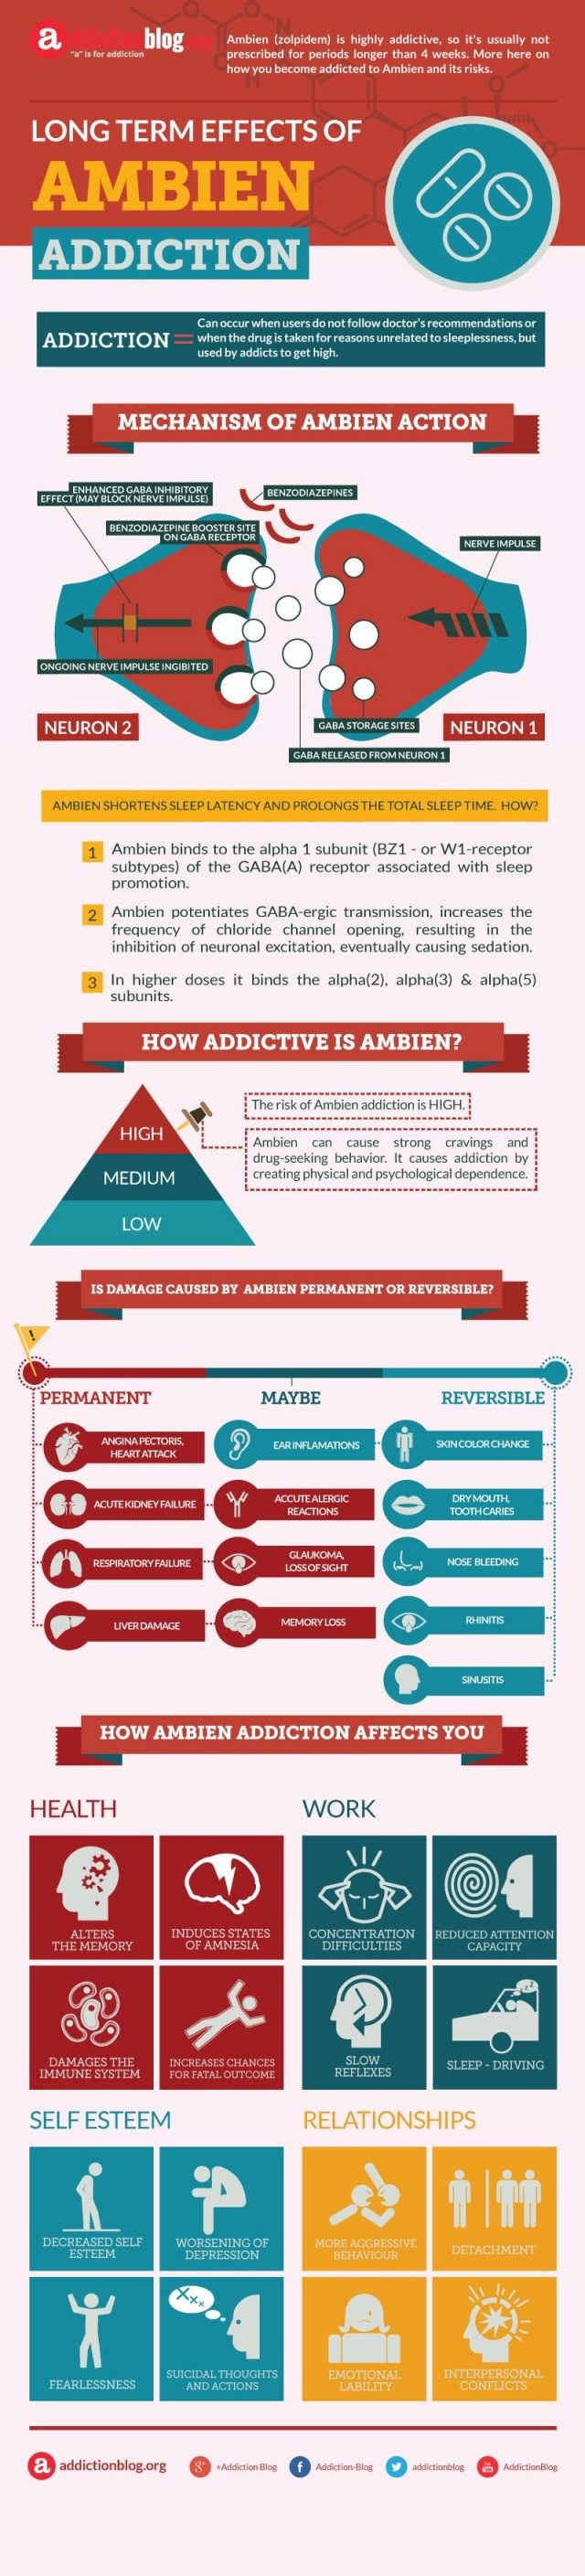 Long term effects of Ambien addiction